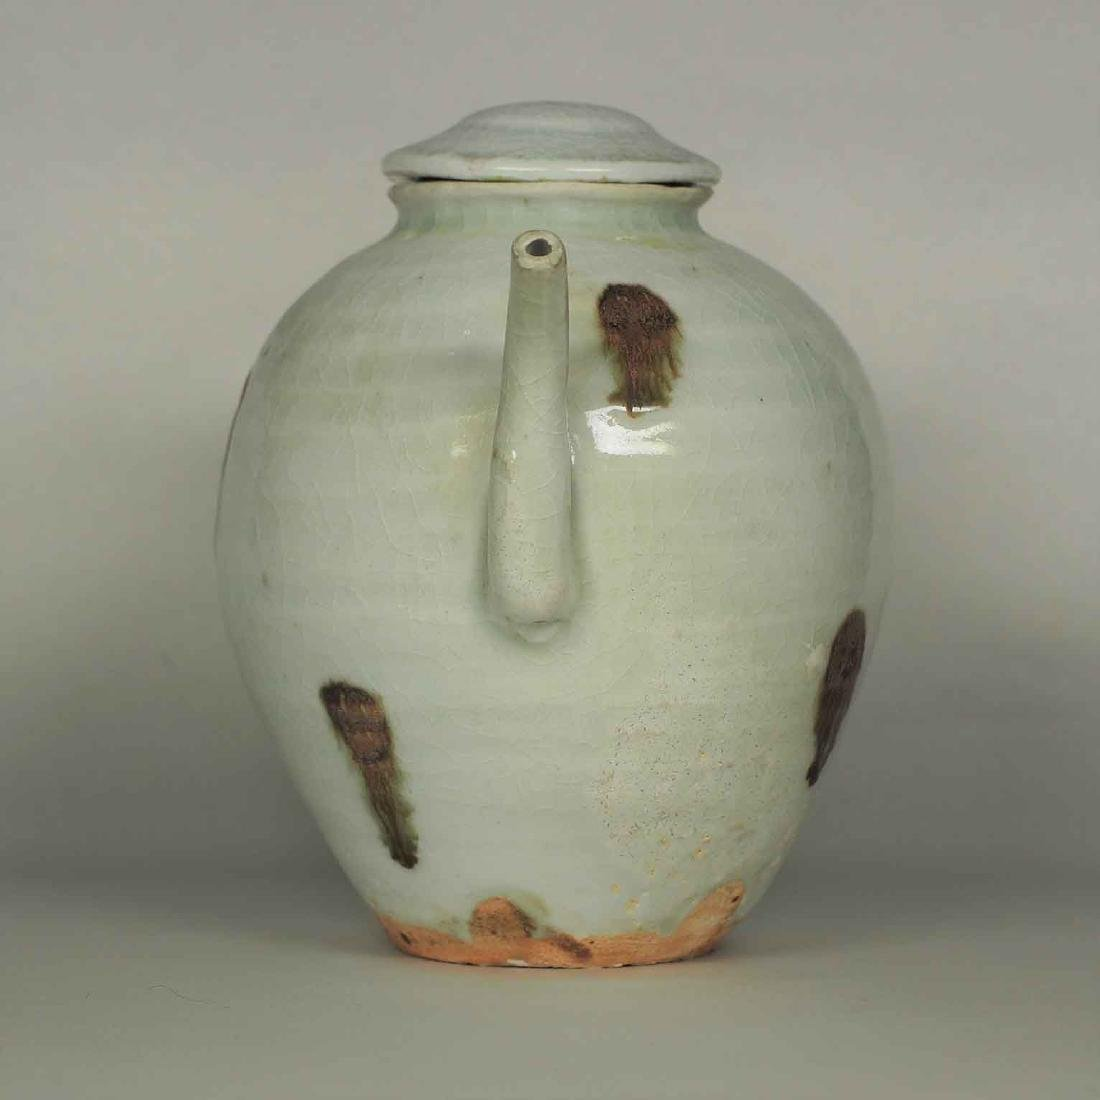 Ewer with Brown Spot, Yuan Dynasty - 4